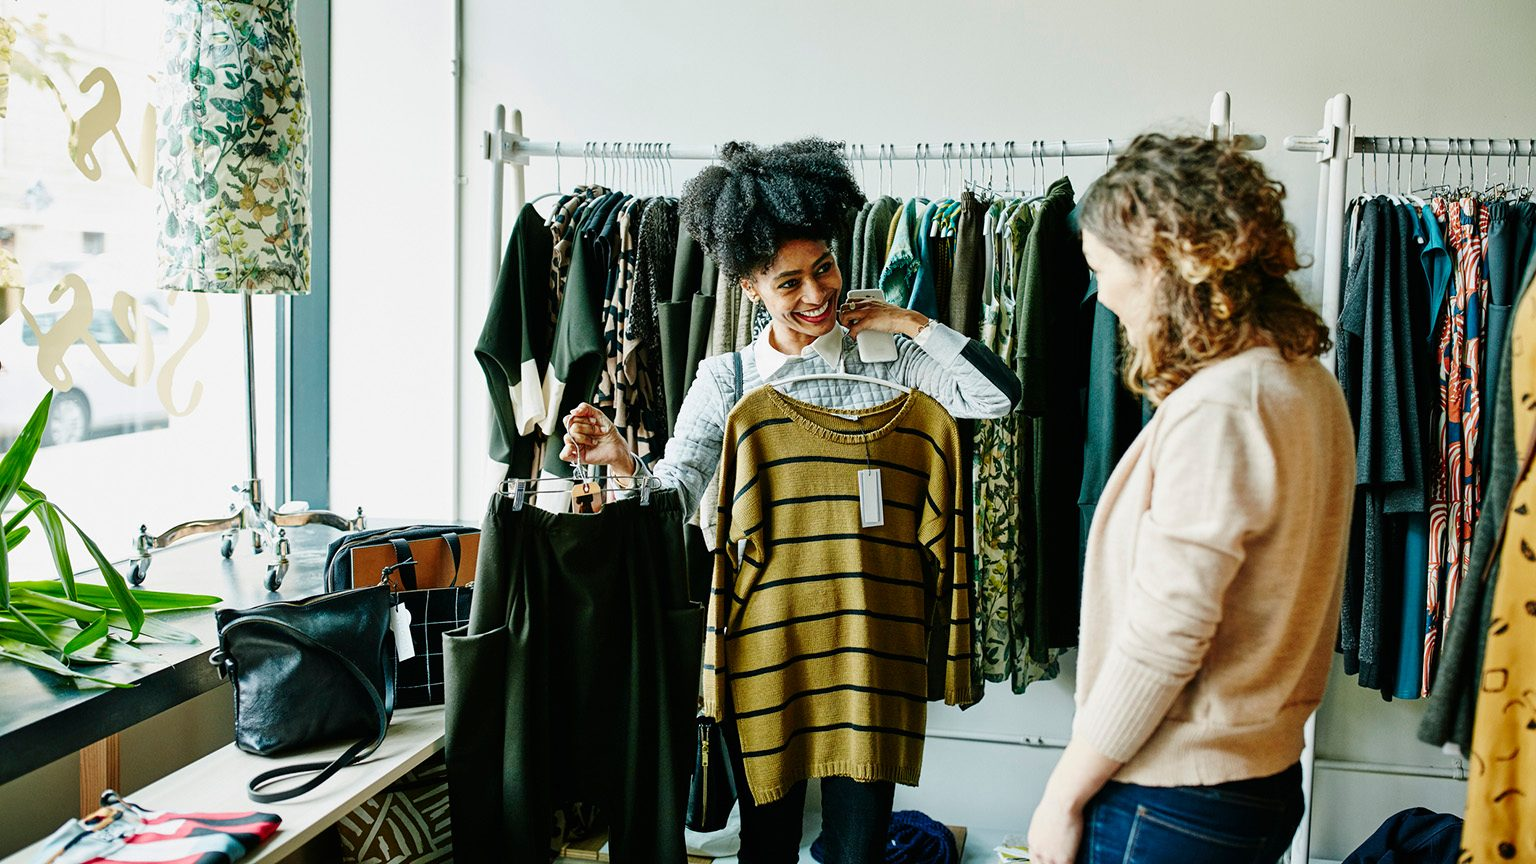 Smiling woman showing clothing options